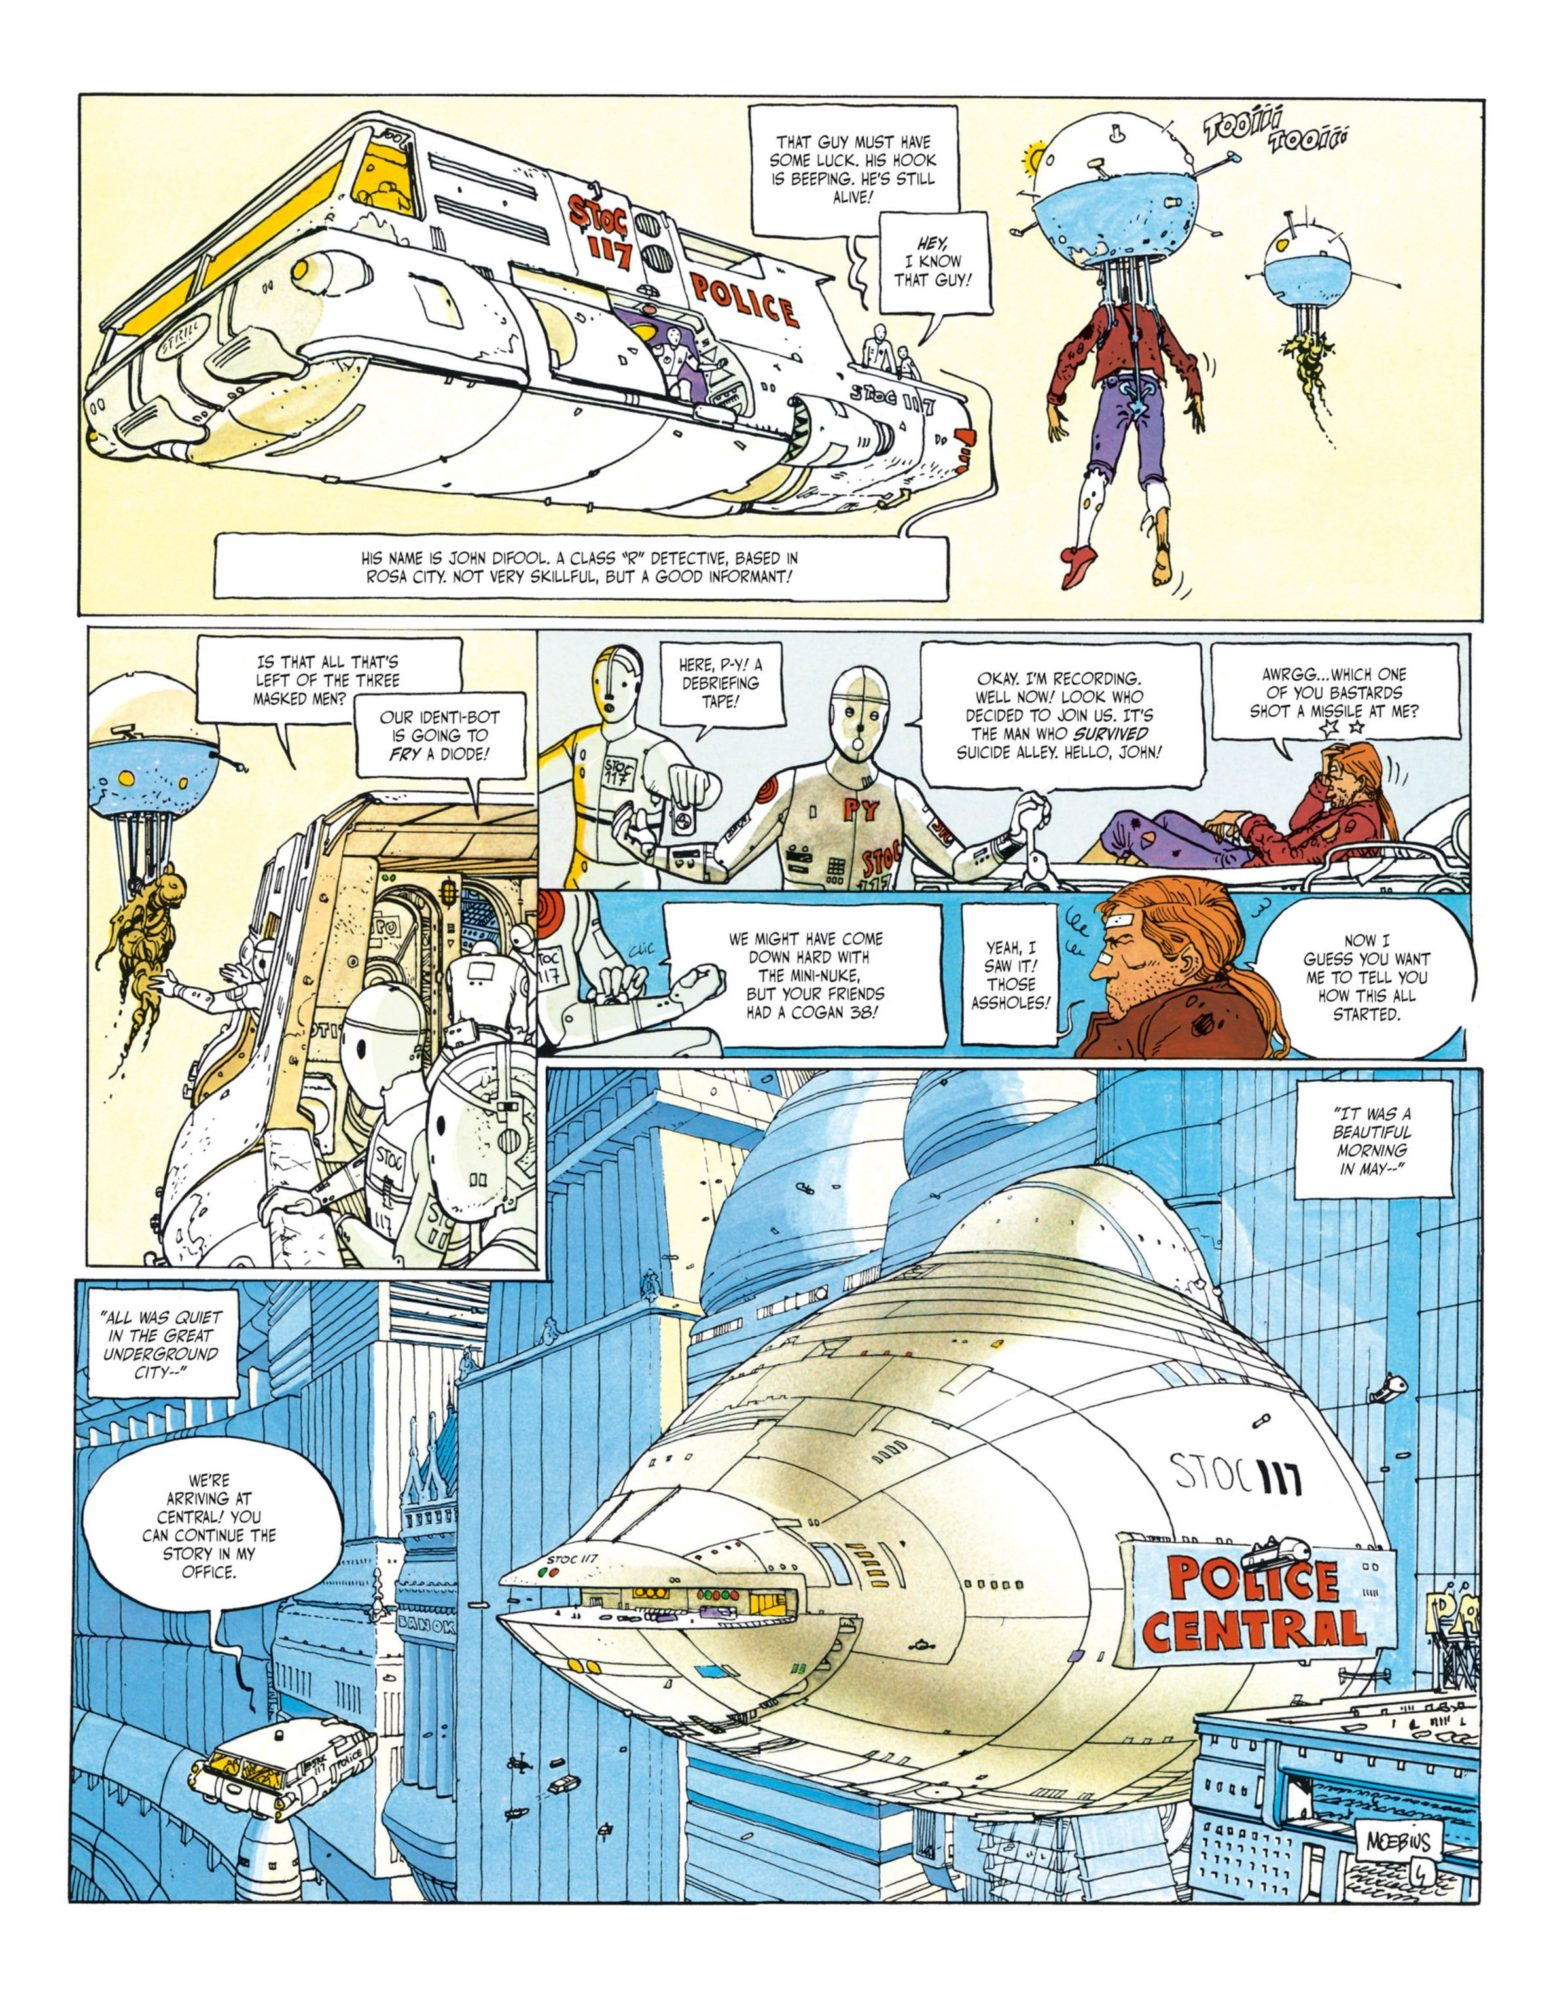 The Incal - John DiFool captured by the police